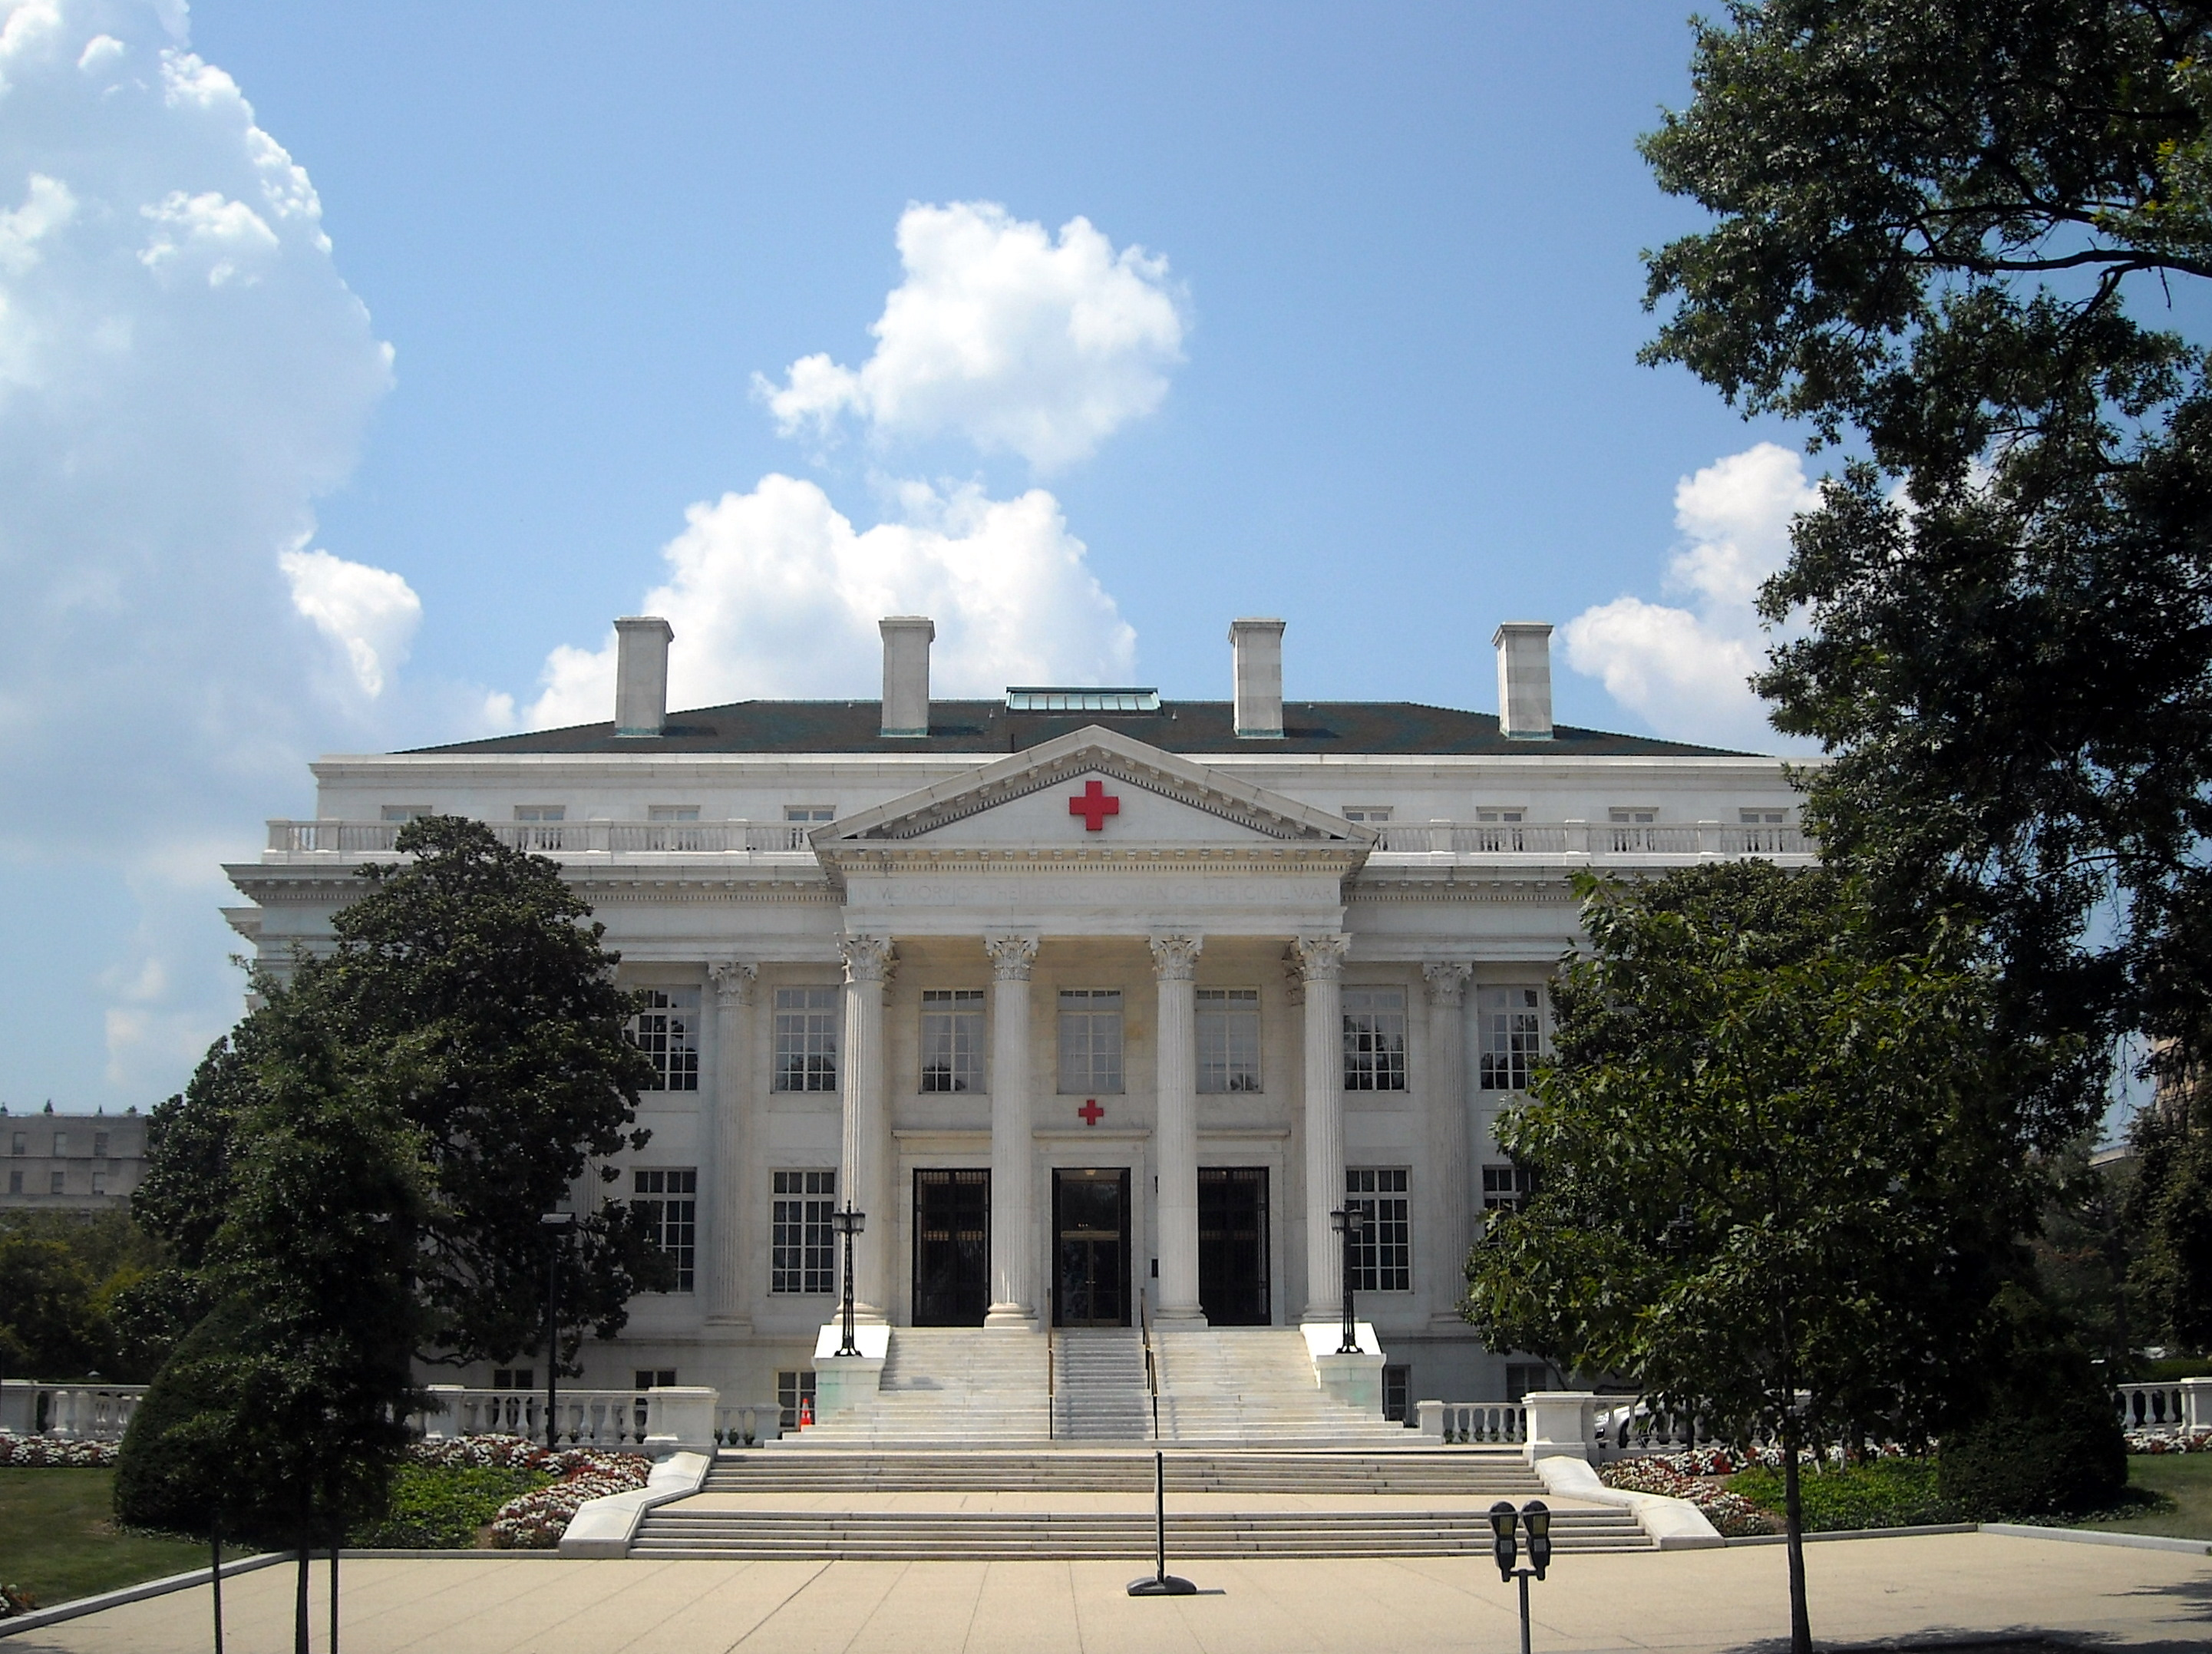 American Red Cross National Headquarters, Washington, DC